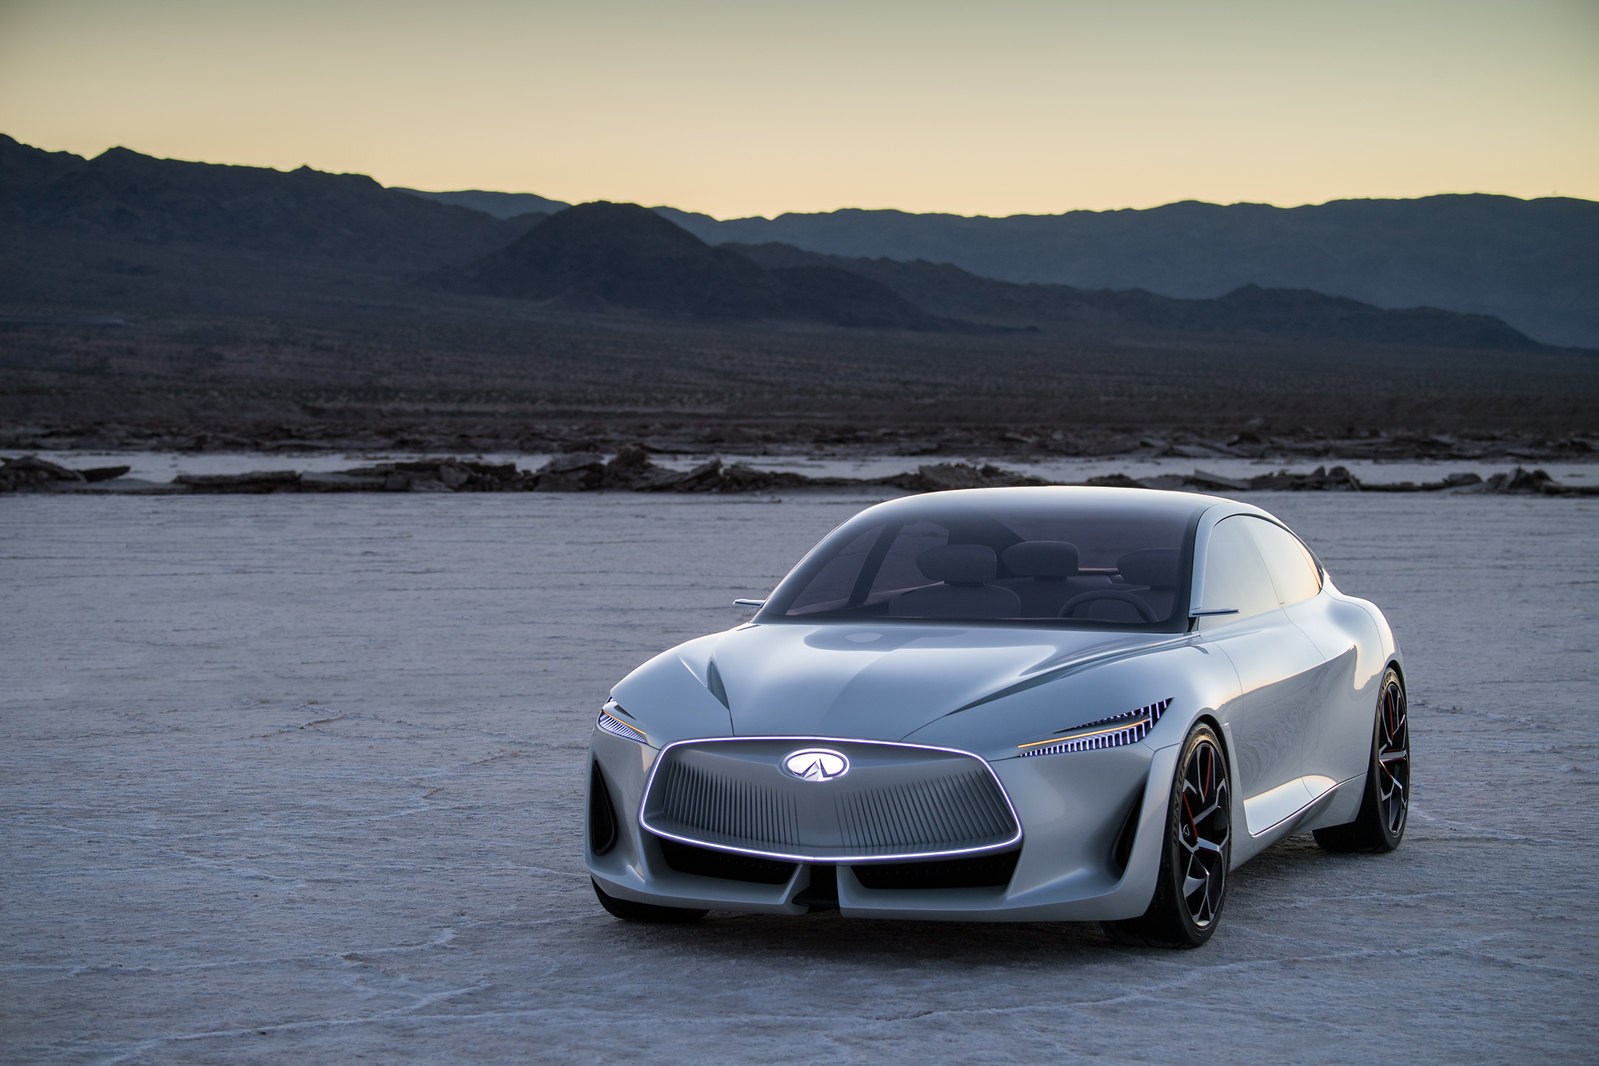 Infiniti reveals new form language for an era of advanced powertrains